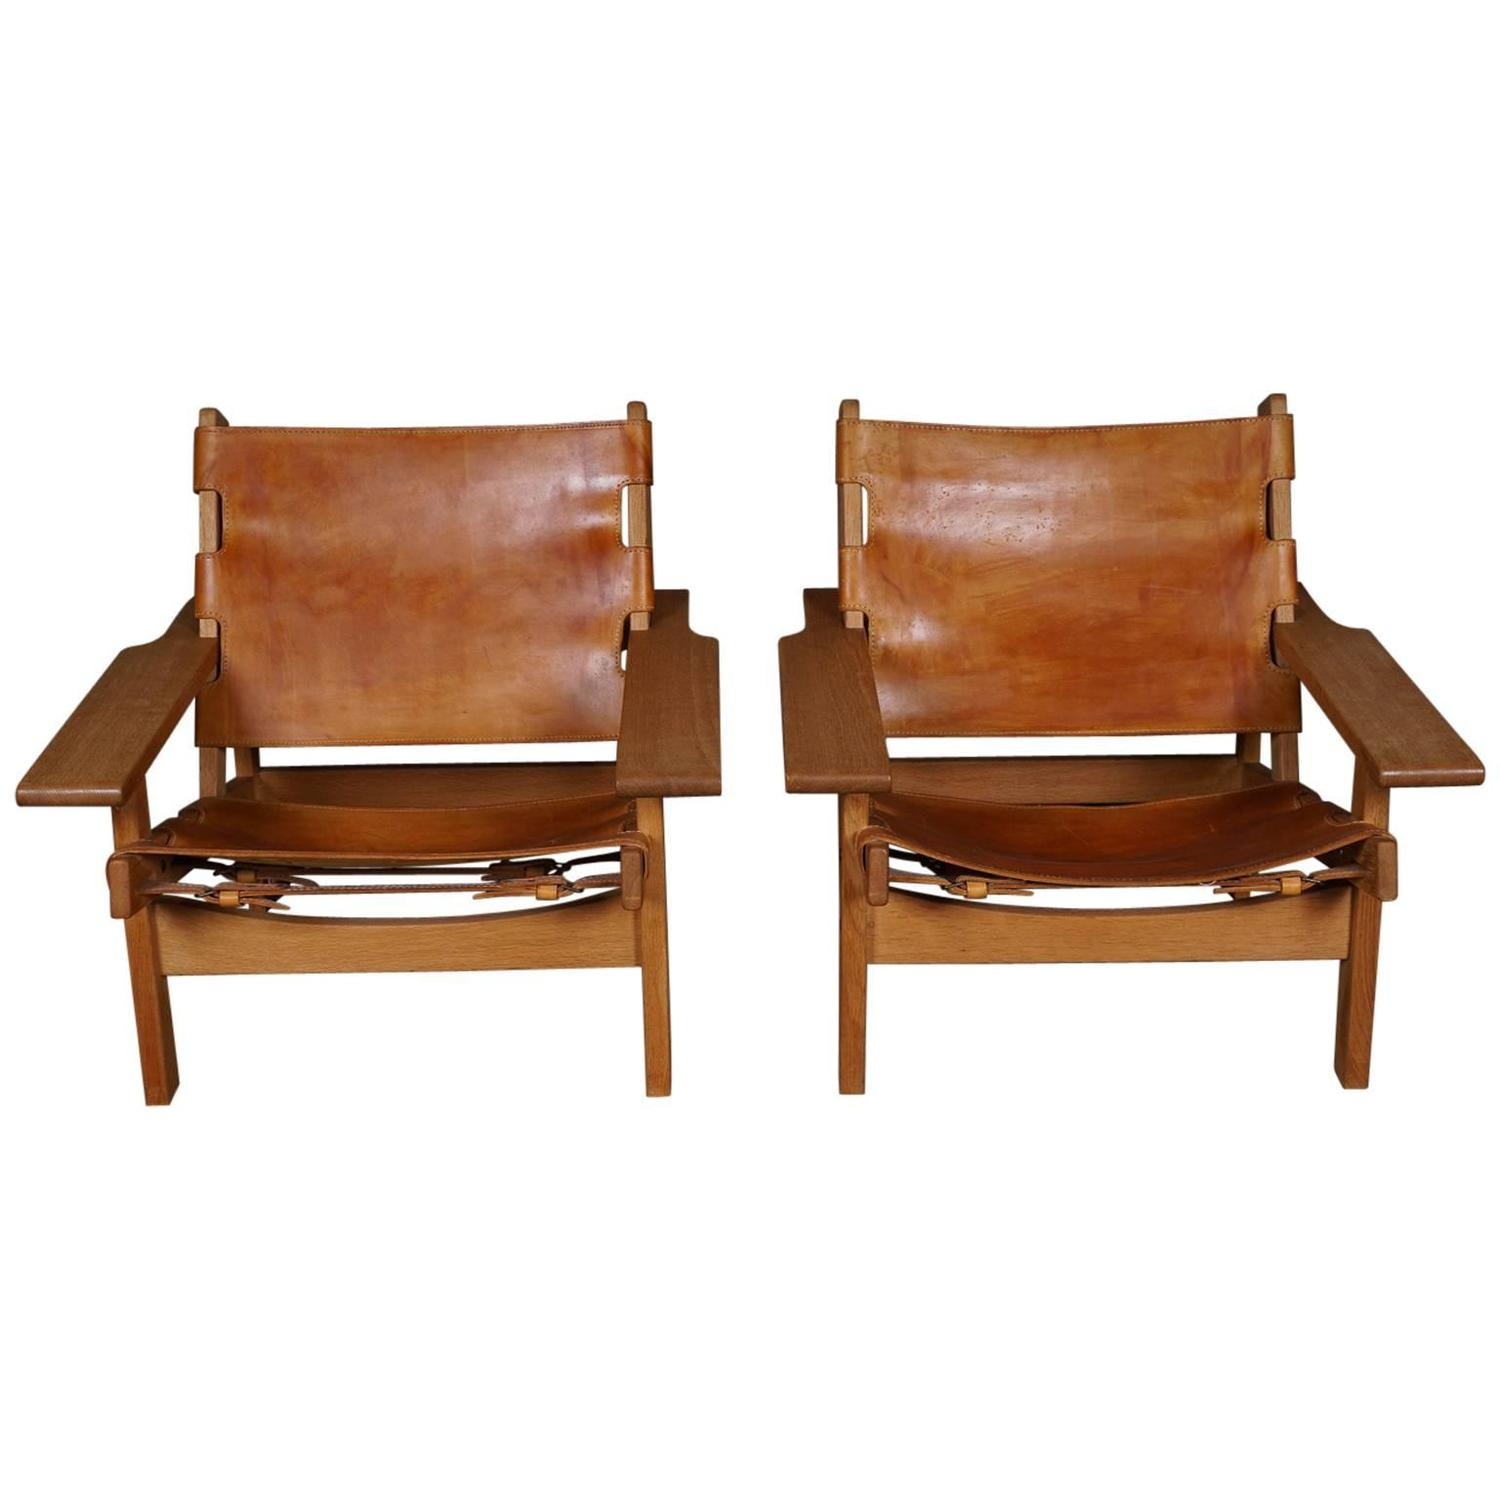 Pair of Erling Jessen Hunting Chairs at 1stdibs